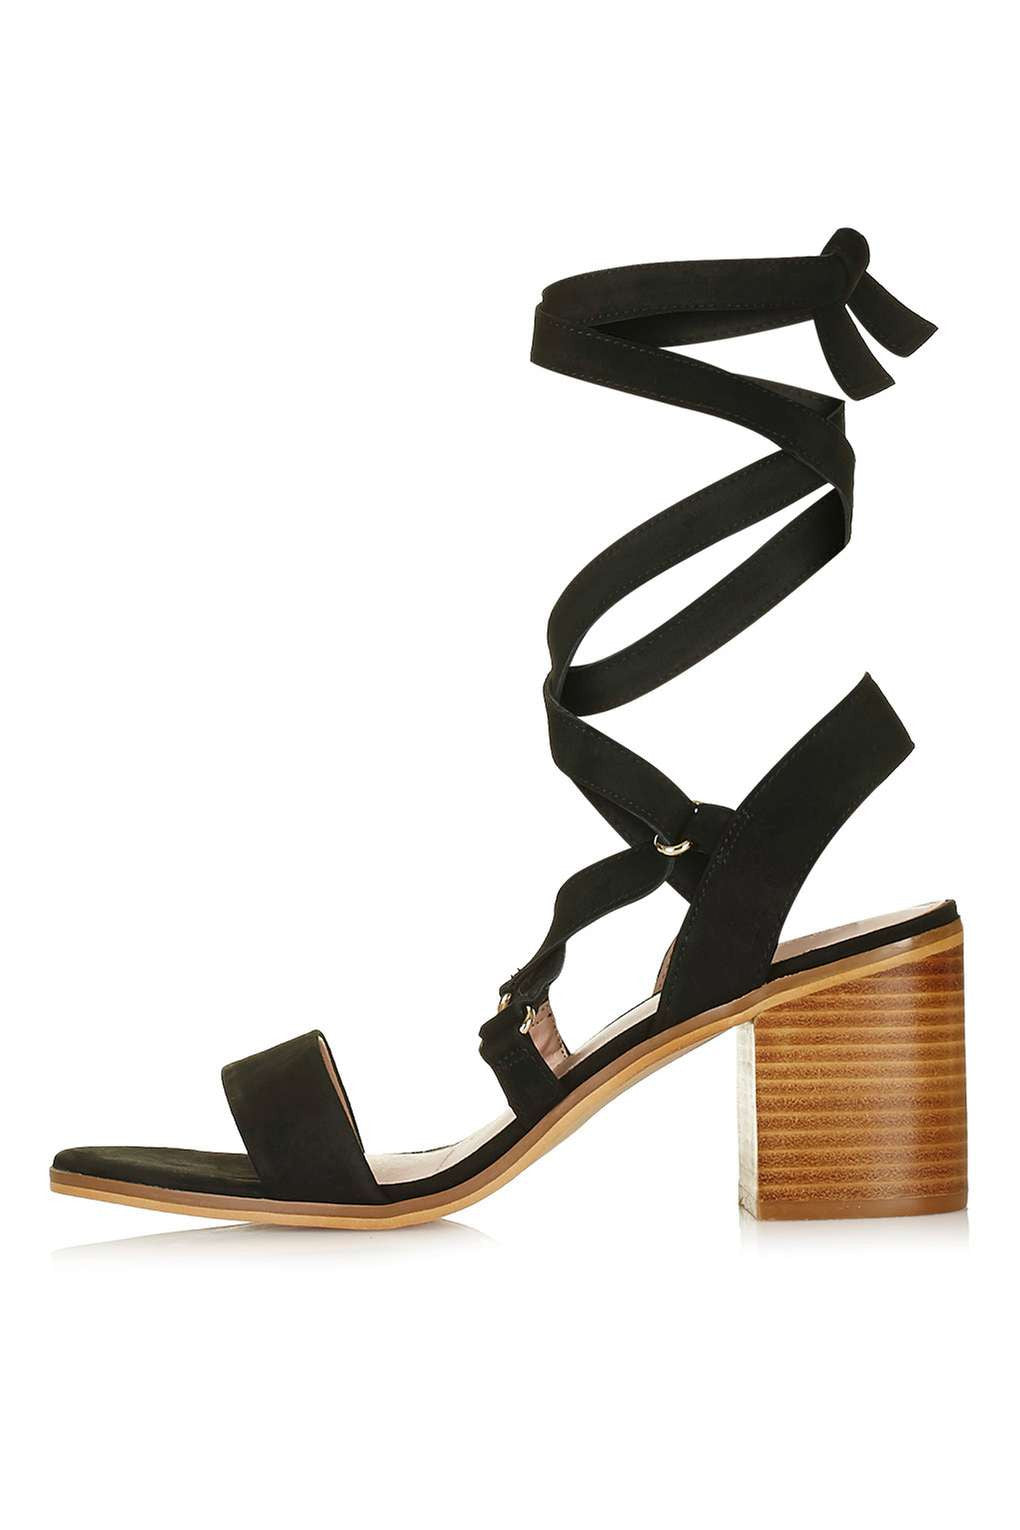 TopShop NARDA Ankle-Tie Mid Sandals